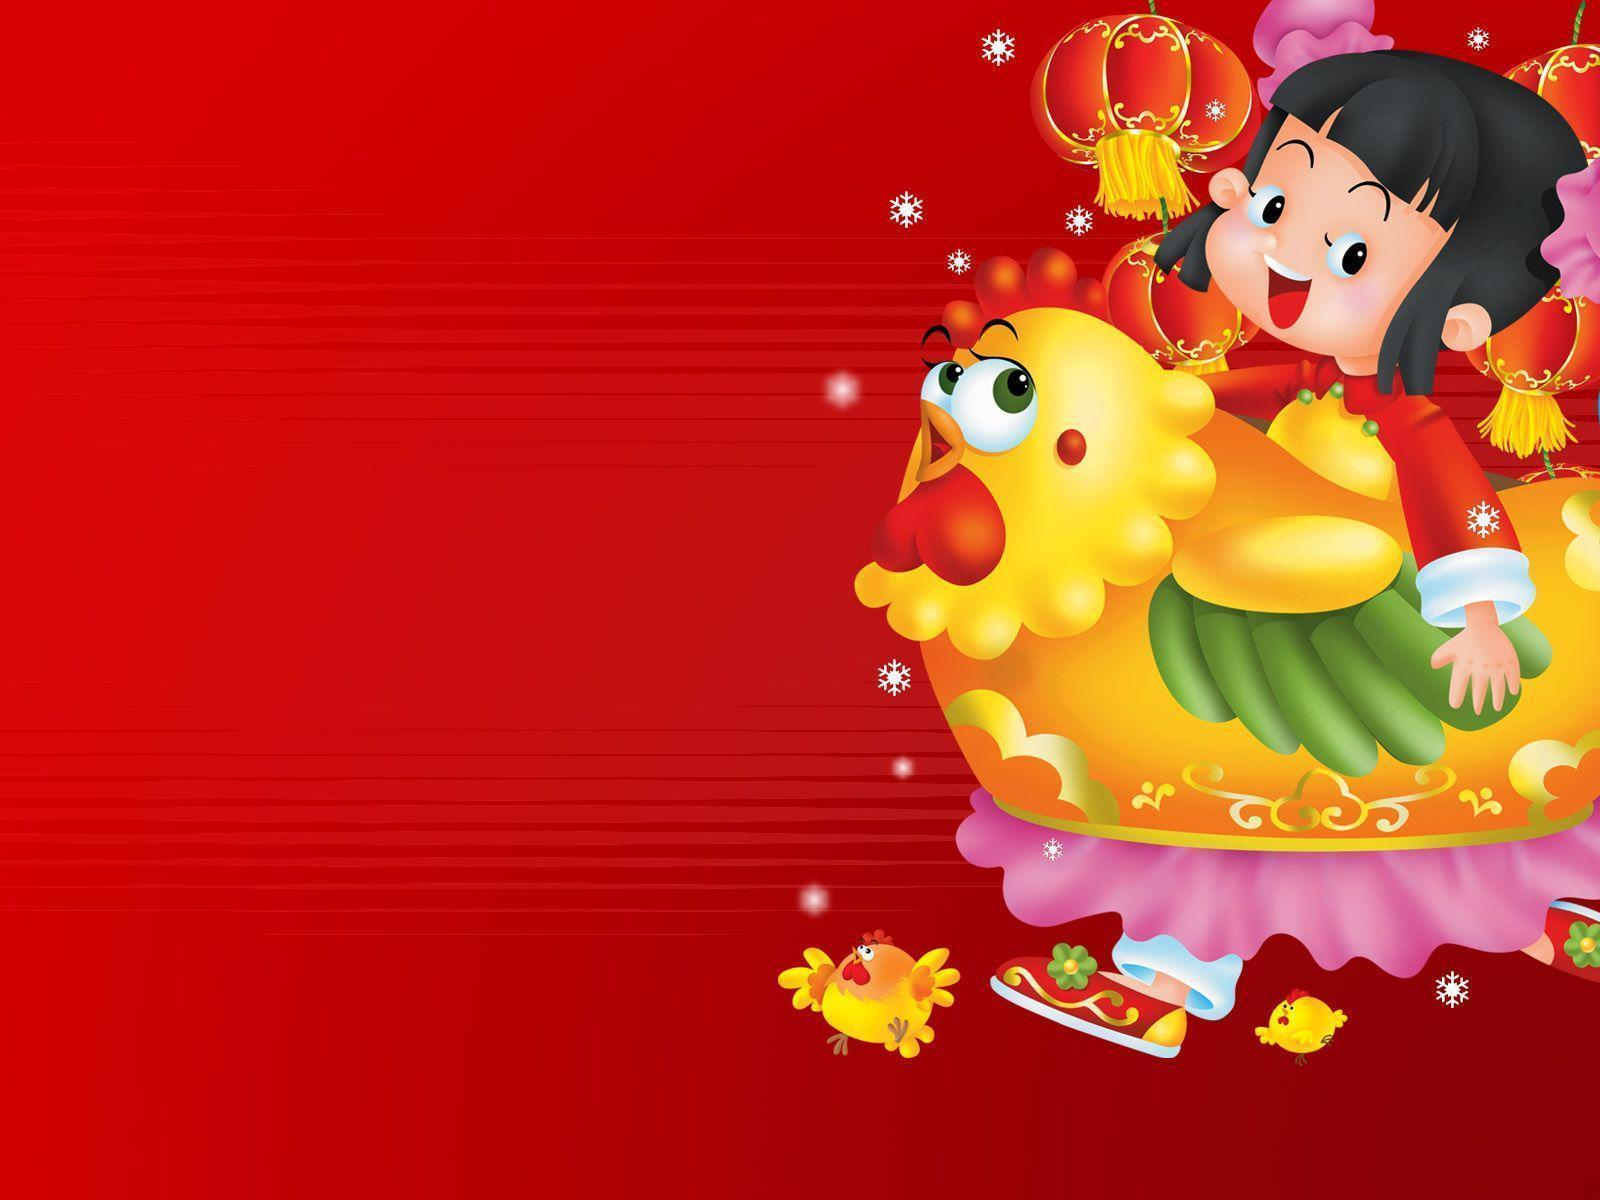 Vector Chinese New Year Wallpaper 4535 - New Wallpapers - Festival